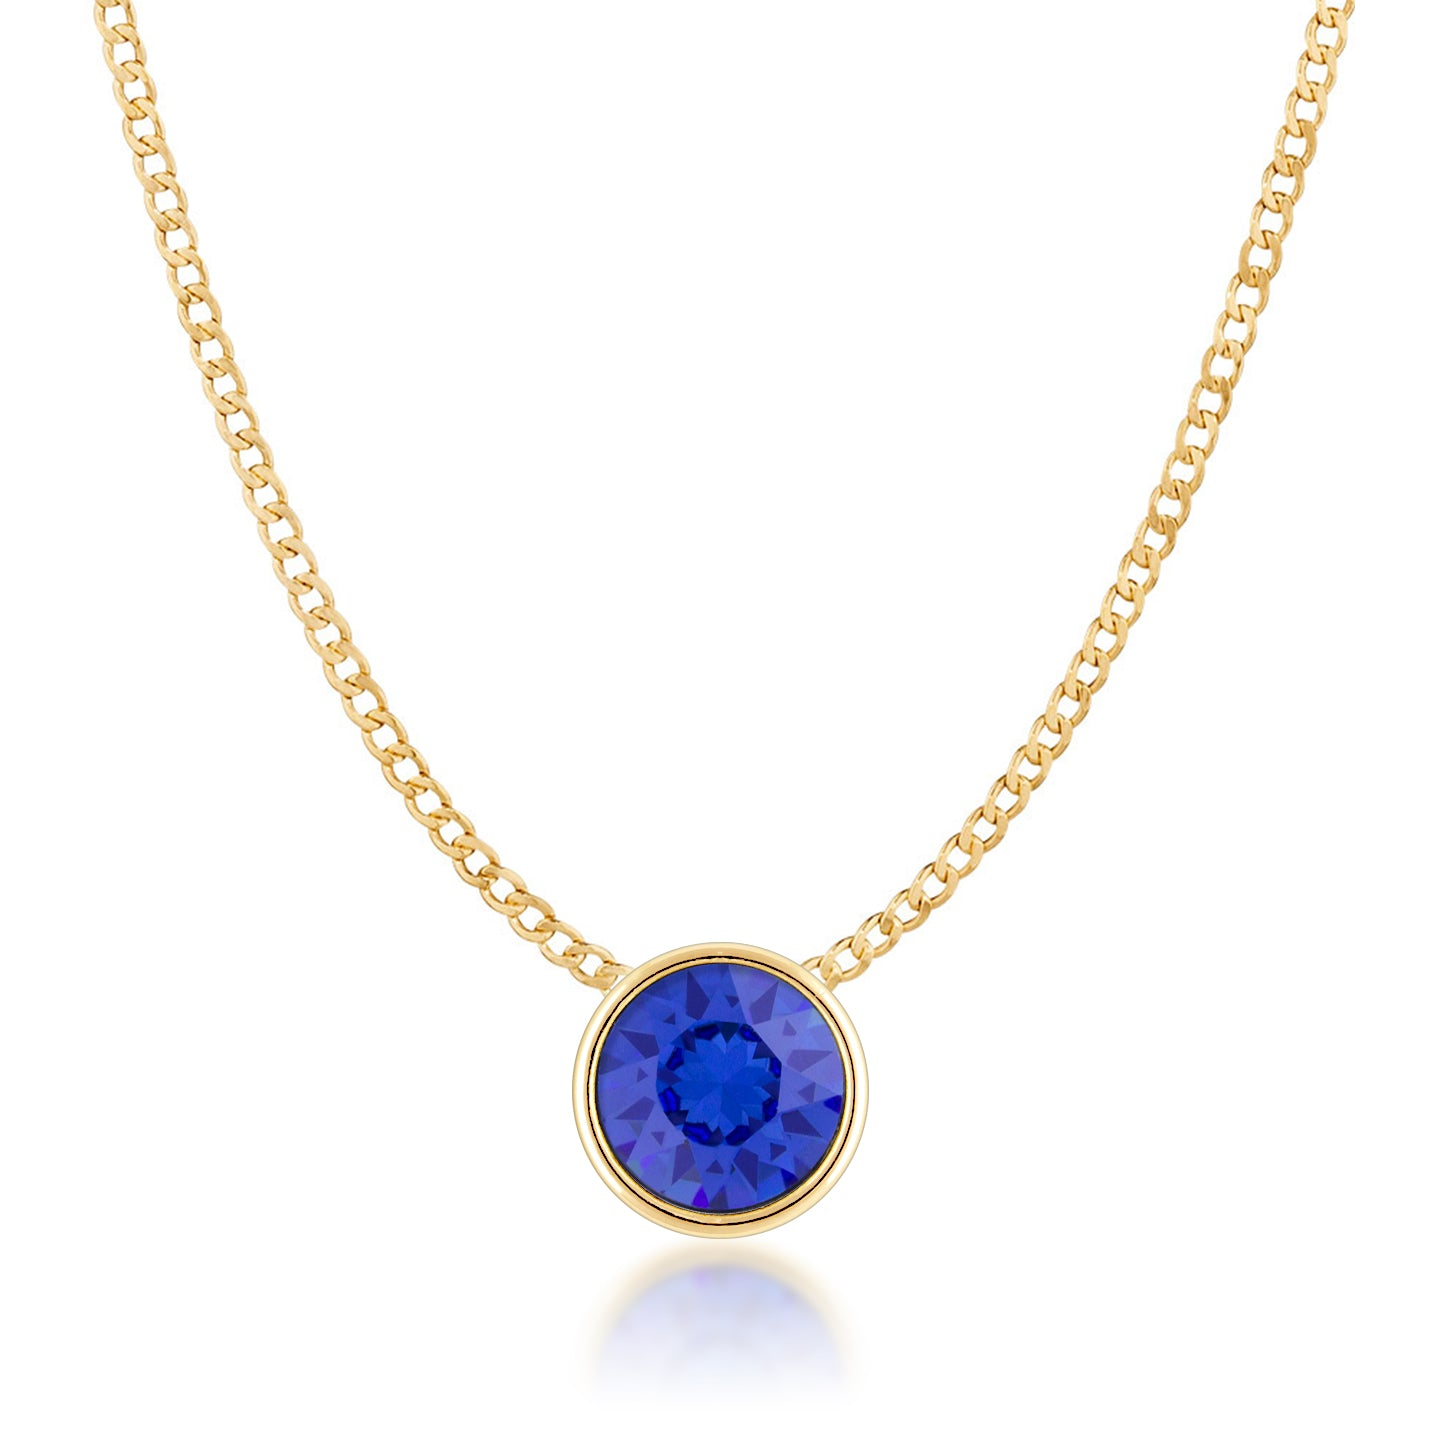 Harley Small Pendant Necklace with Blue Sapphire Round Crystals from Swarovski Gold Plated - Ed Heart